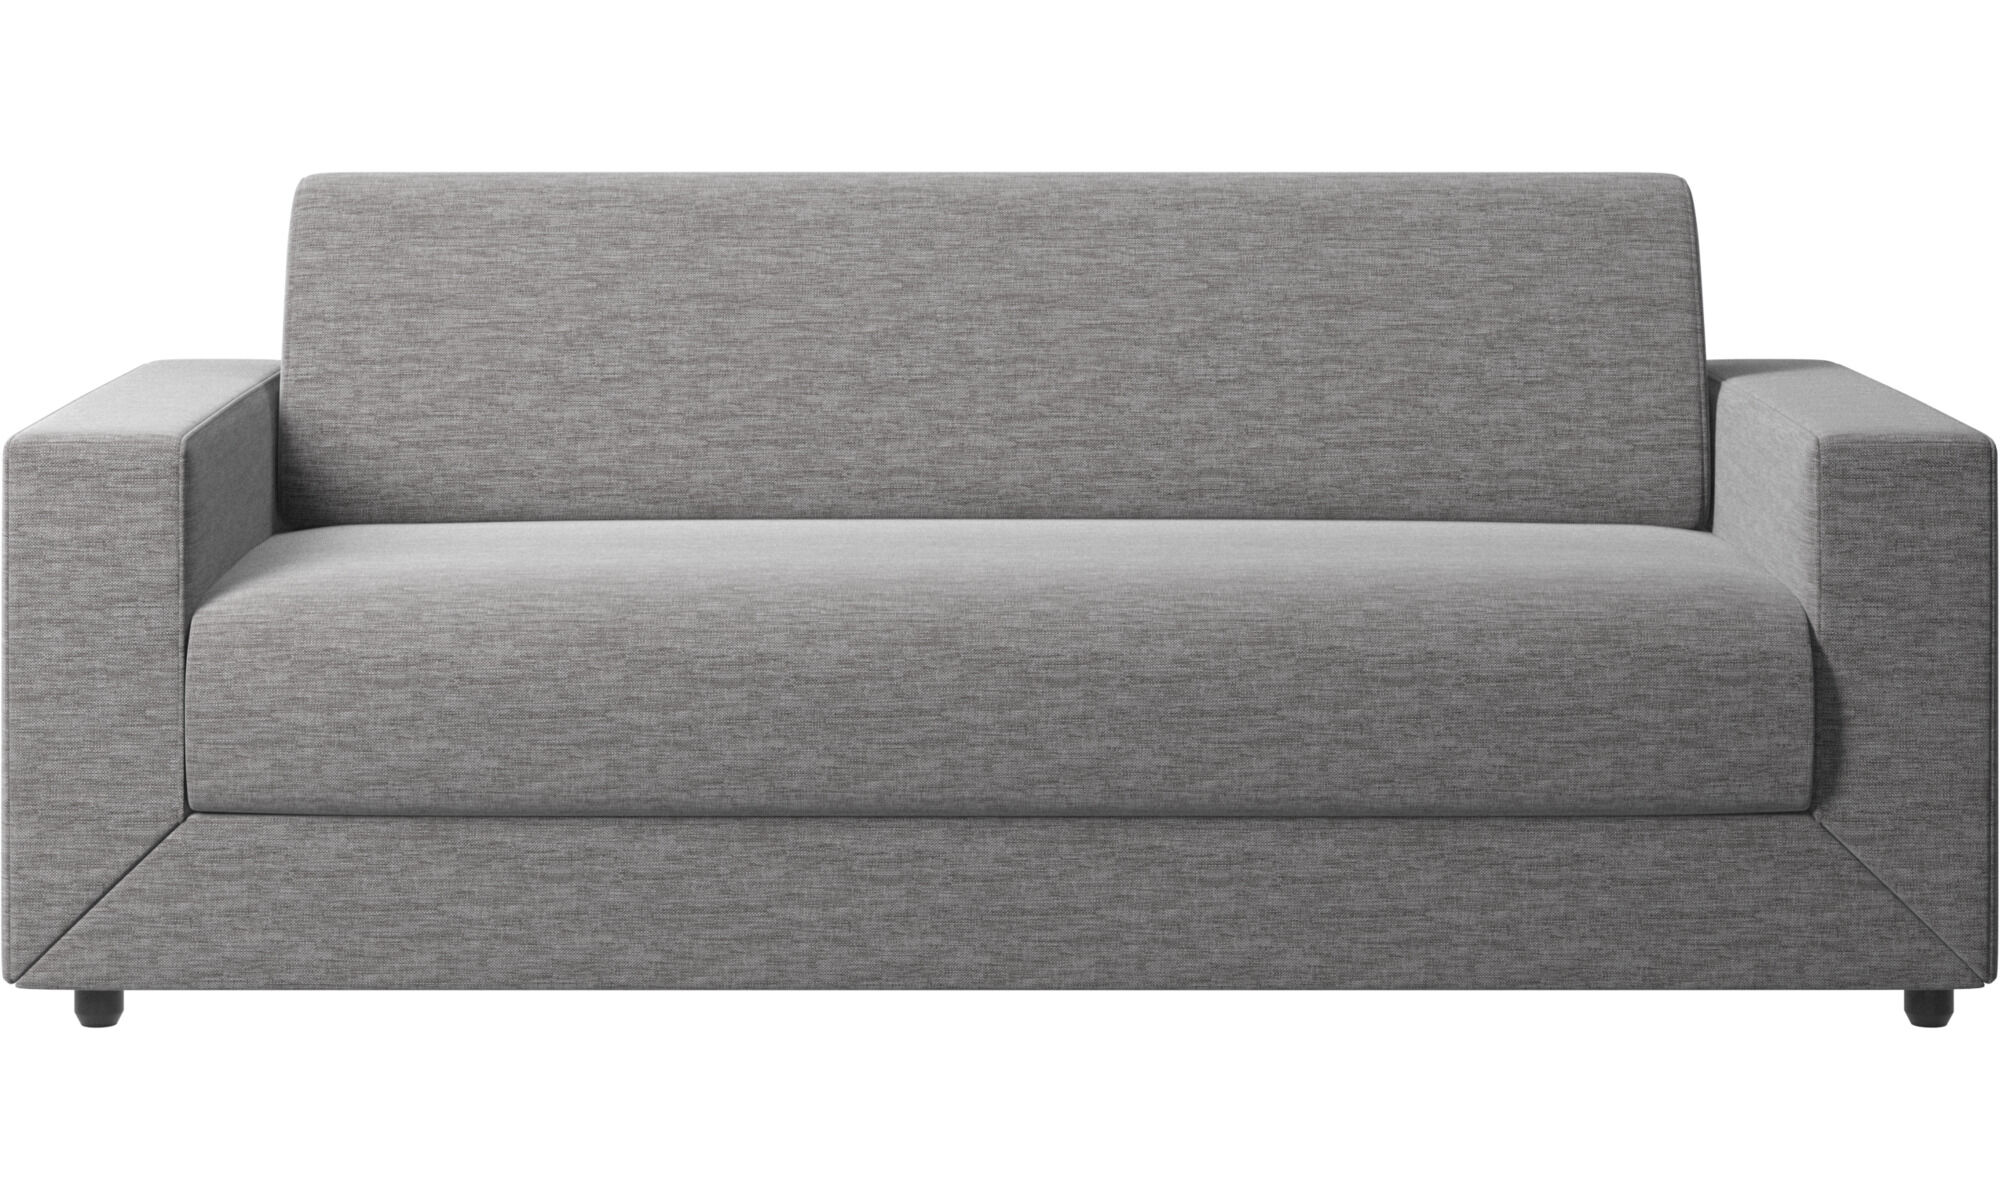 chair beds for adults round loveseat sofa quality from boconcept stockholm bed gray fabric